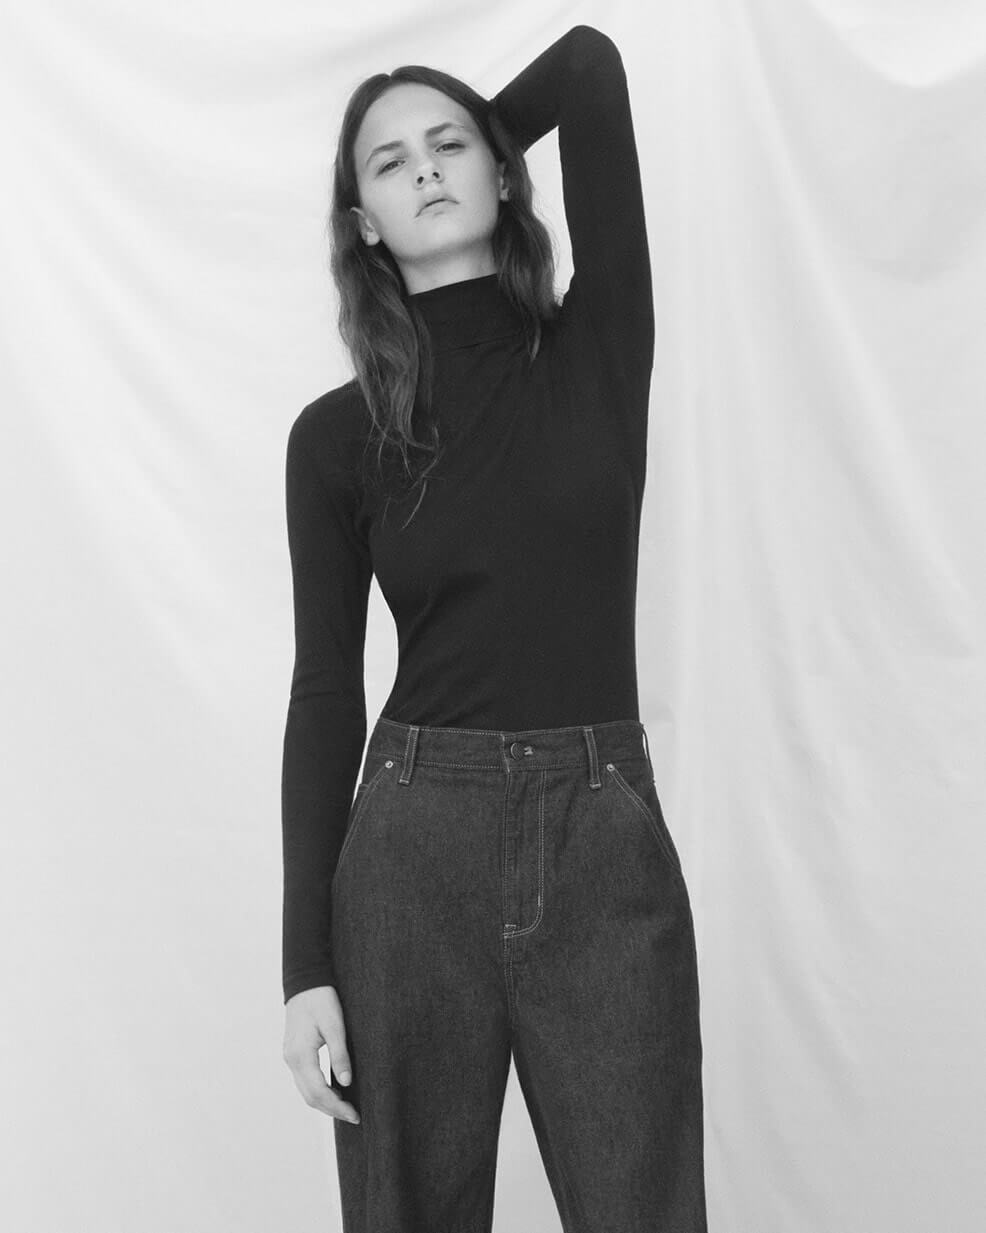 calvin women Formerly known as calvin klein collection, the calvin klein luxury ready-to-wear line reconfigured under the brand's chief creative officer, raf simons.